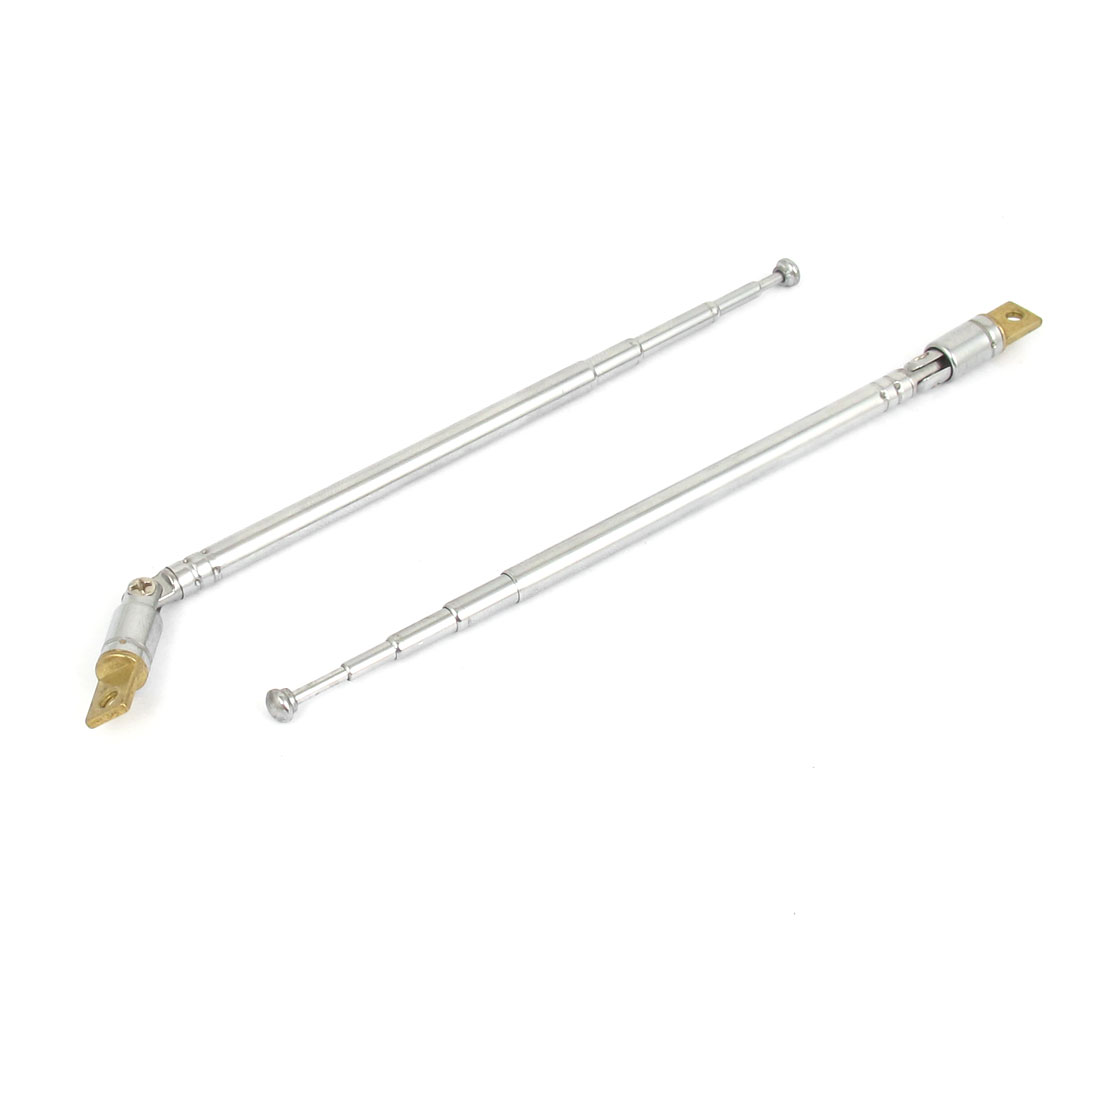 "2pcs 320mm 12.6"" Long 5 Sections Telescopic Antenna Aerial 360 Degree for RC Radio Controller"